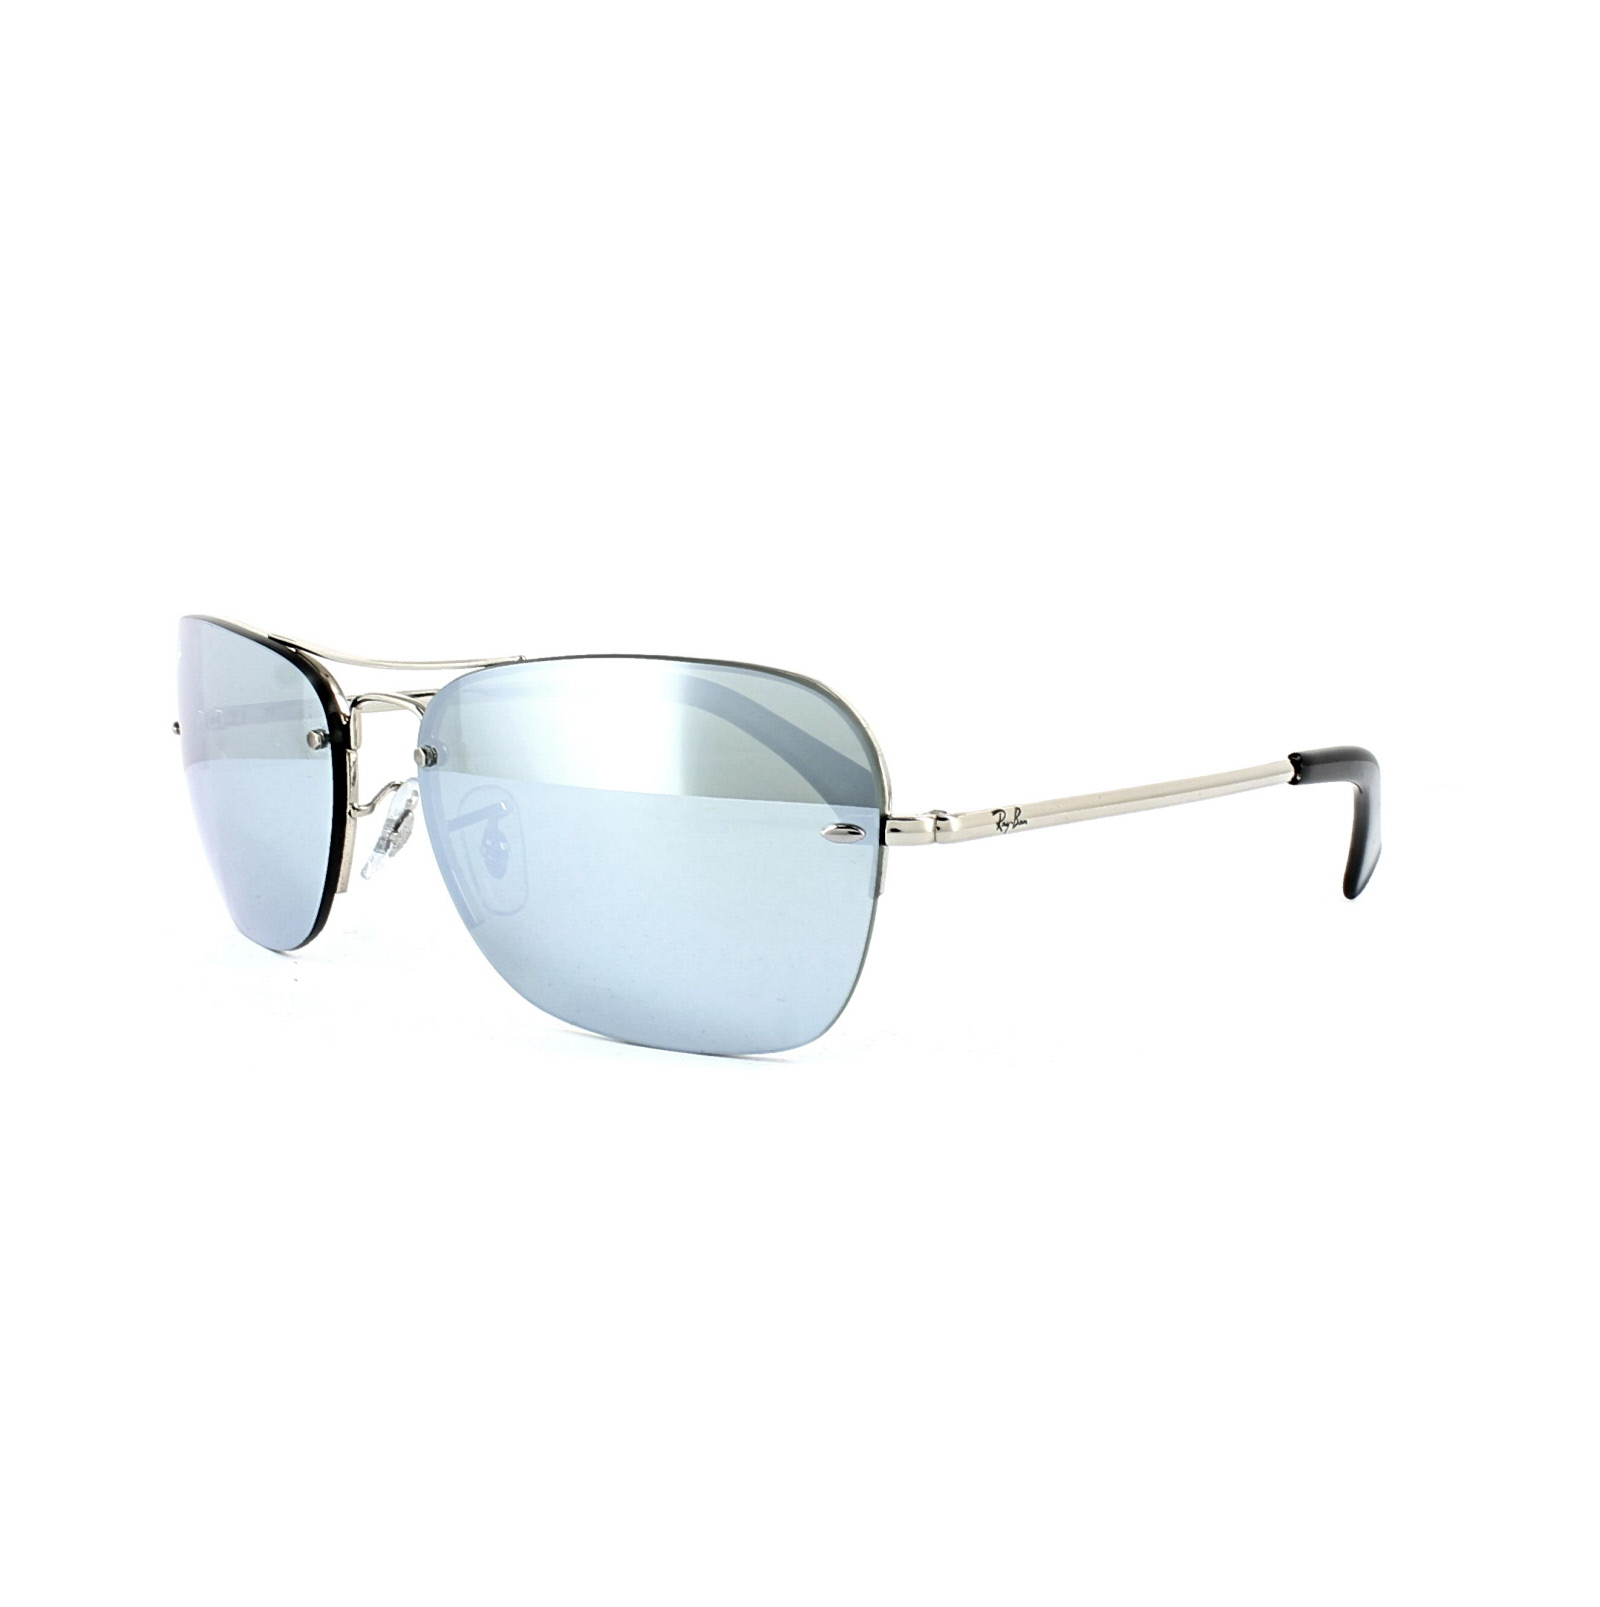 f7d380ce88 ray ban wayfarer 2140 price philippines ray-ban sunglasses models in ...